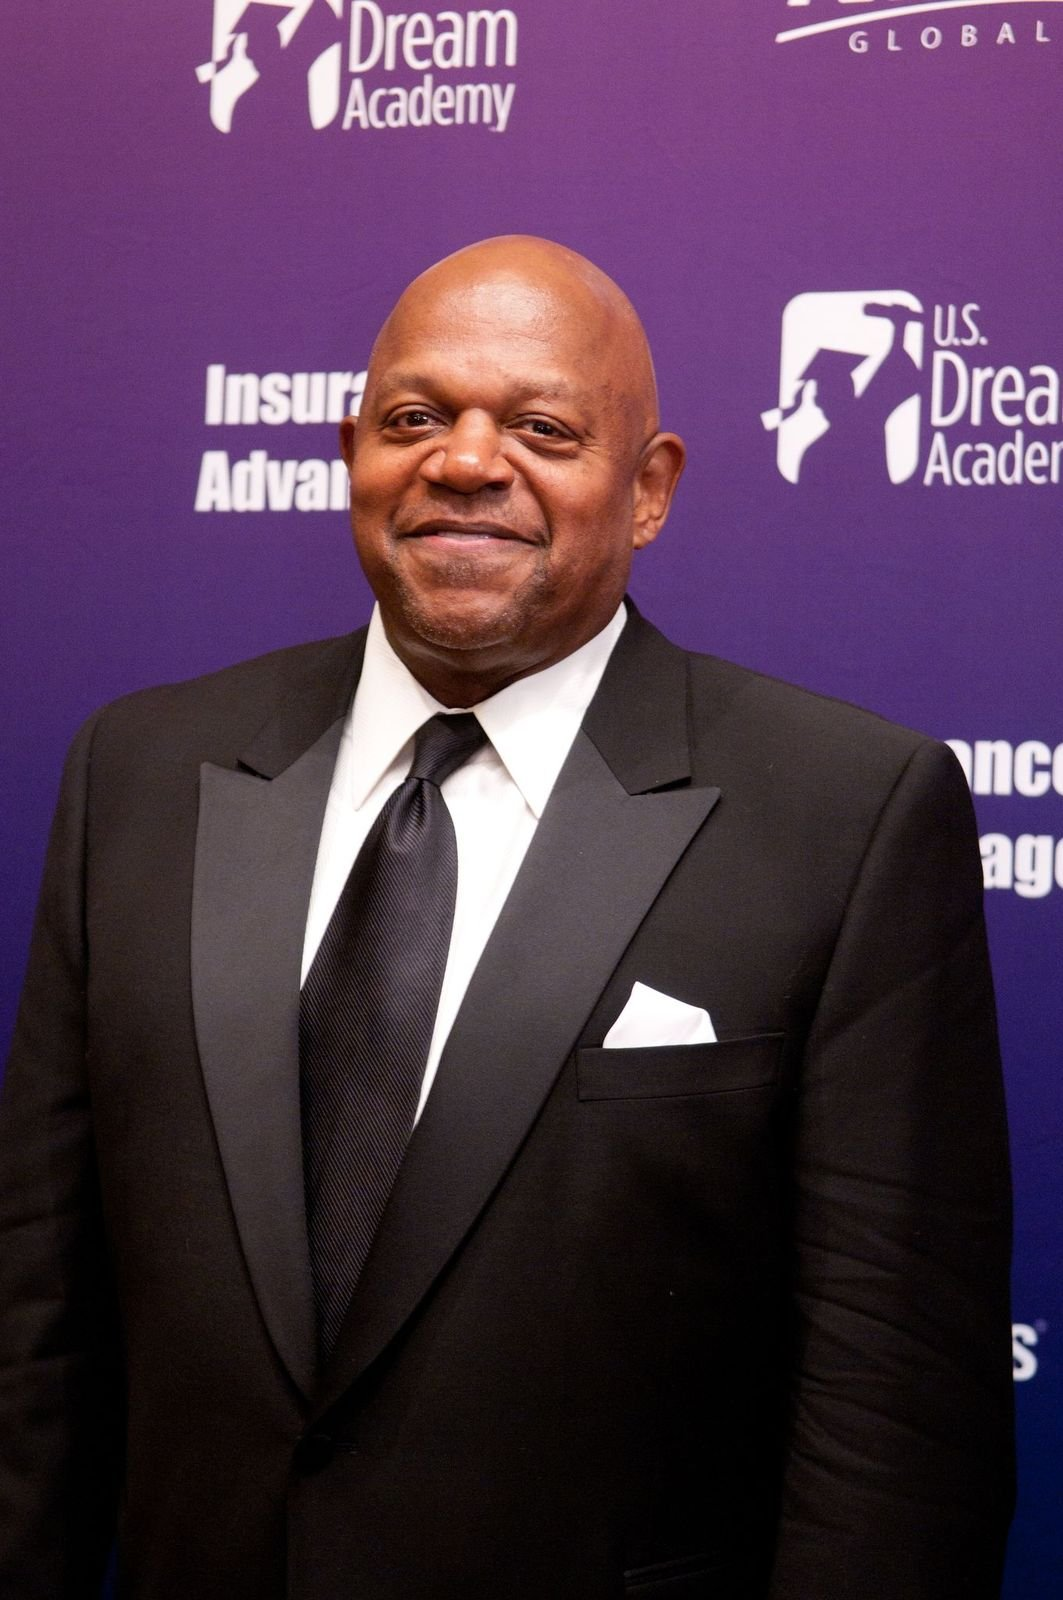 Charles S. Dutton attends the 9th annual Power of a Dream gala hosted by the U.S. Dream Academy at the Ritz Carlton Hotel on May 18, 2010 | Photo: Getty Images